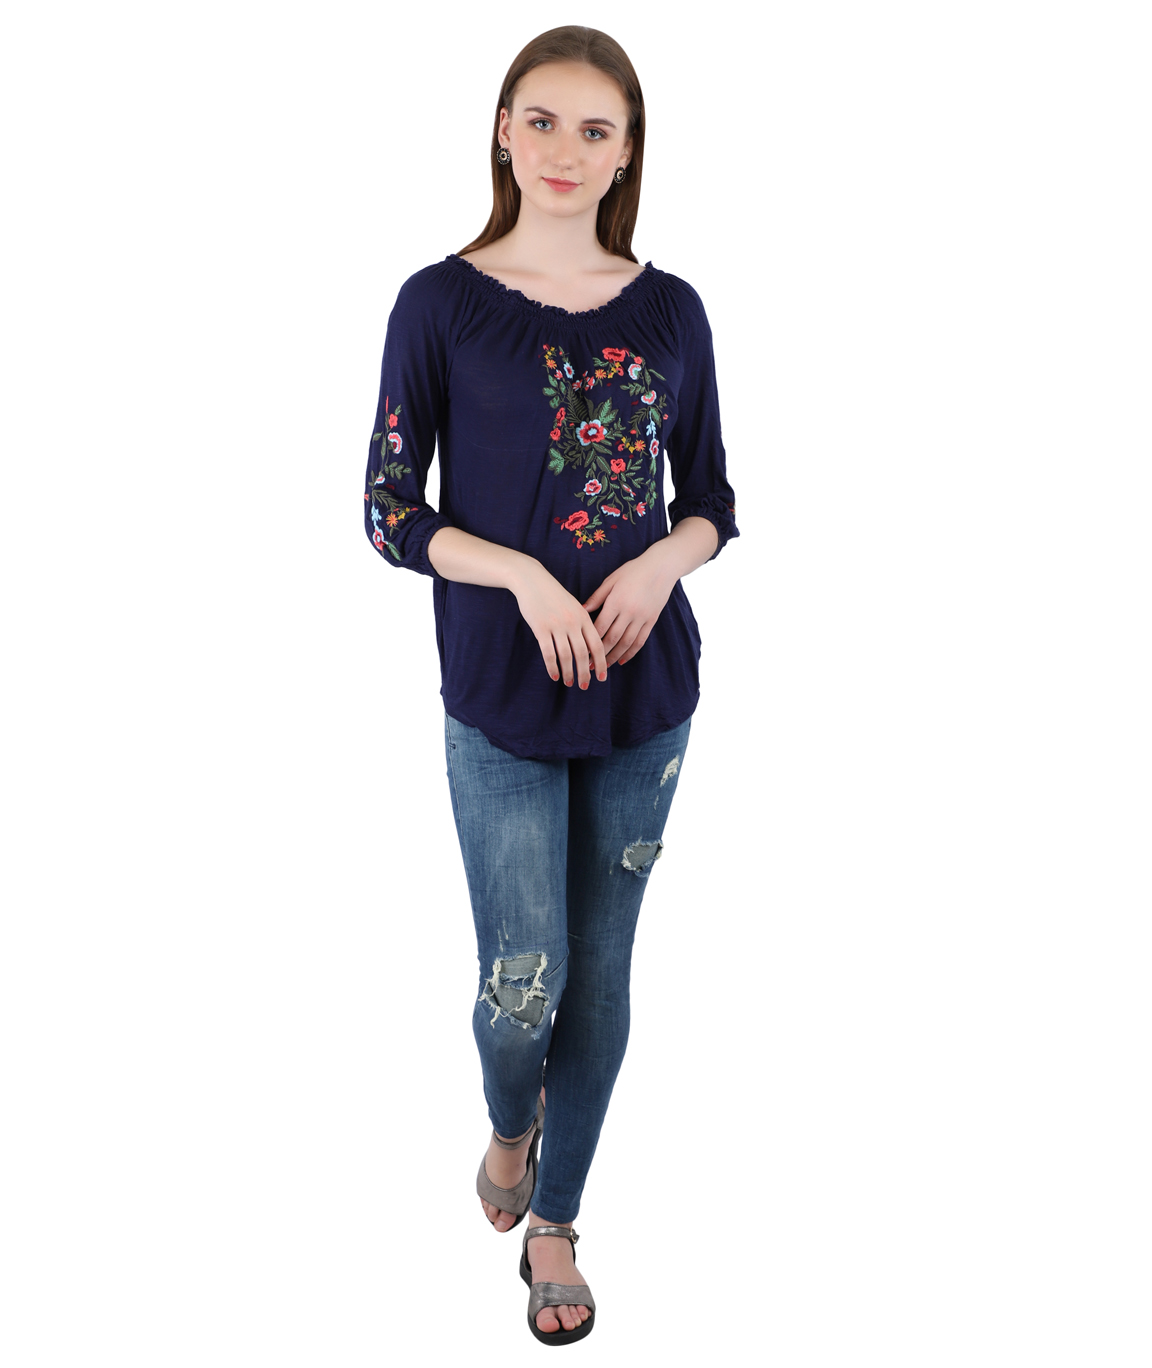 Swag Blue Color Imported  Streachable Fabric Cotton Top For Women